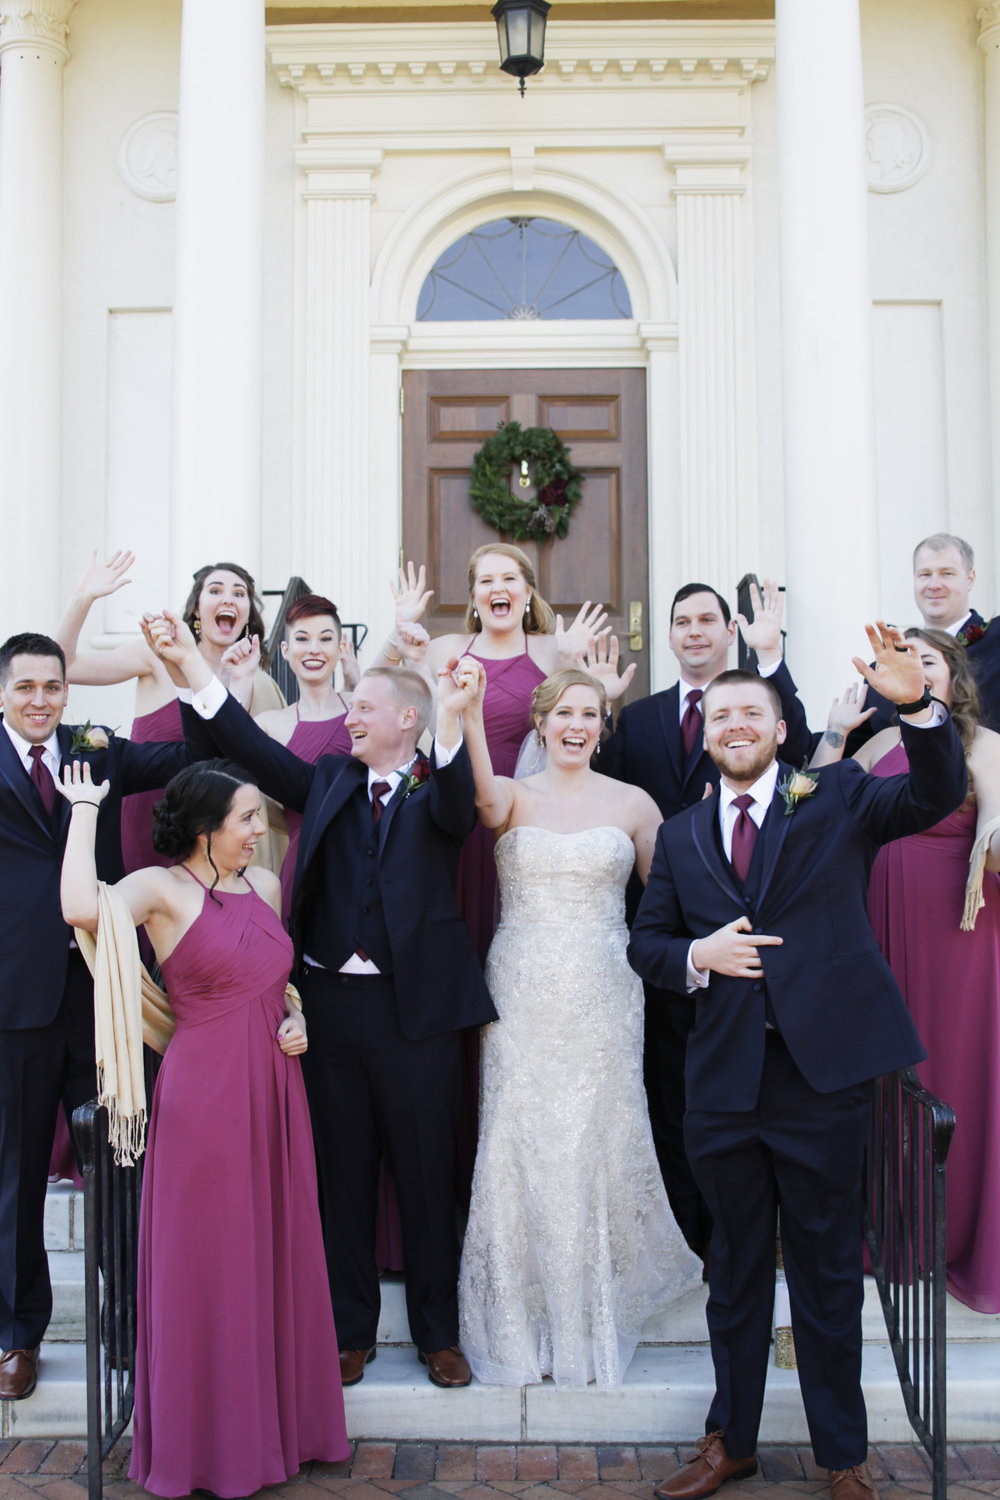 UNCG Alumni House wedding photography by Kayli LaFon Photography